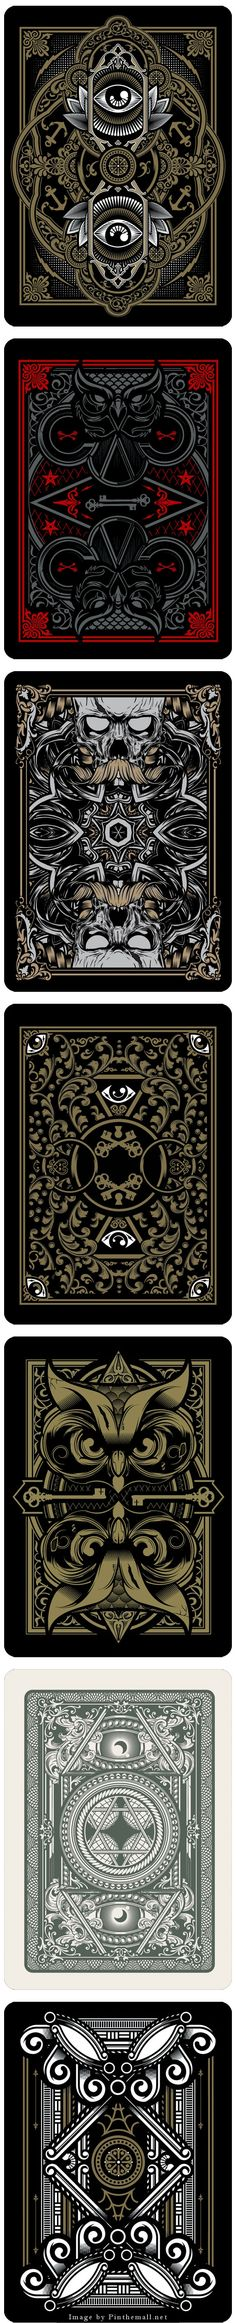 Playing Card Exploration Joshua M. Bg Design, Game Design, Graphic Design, House Of Cards, Deck Of Cards, Art Deco, Art Nouveau, Graphic Pattern, 3d Fantasy